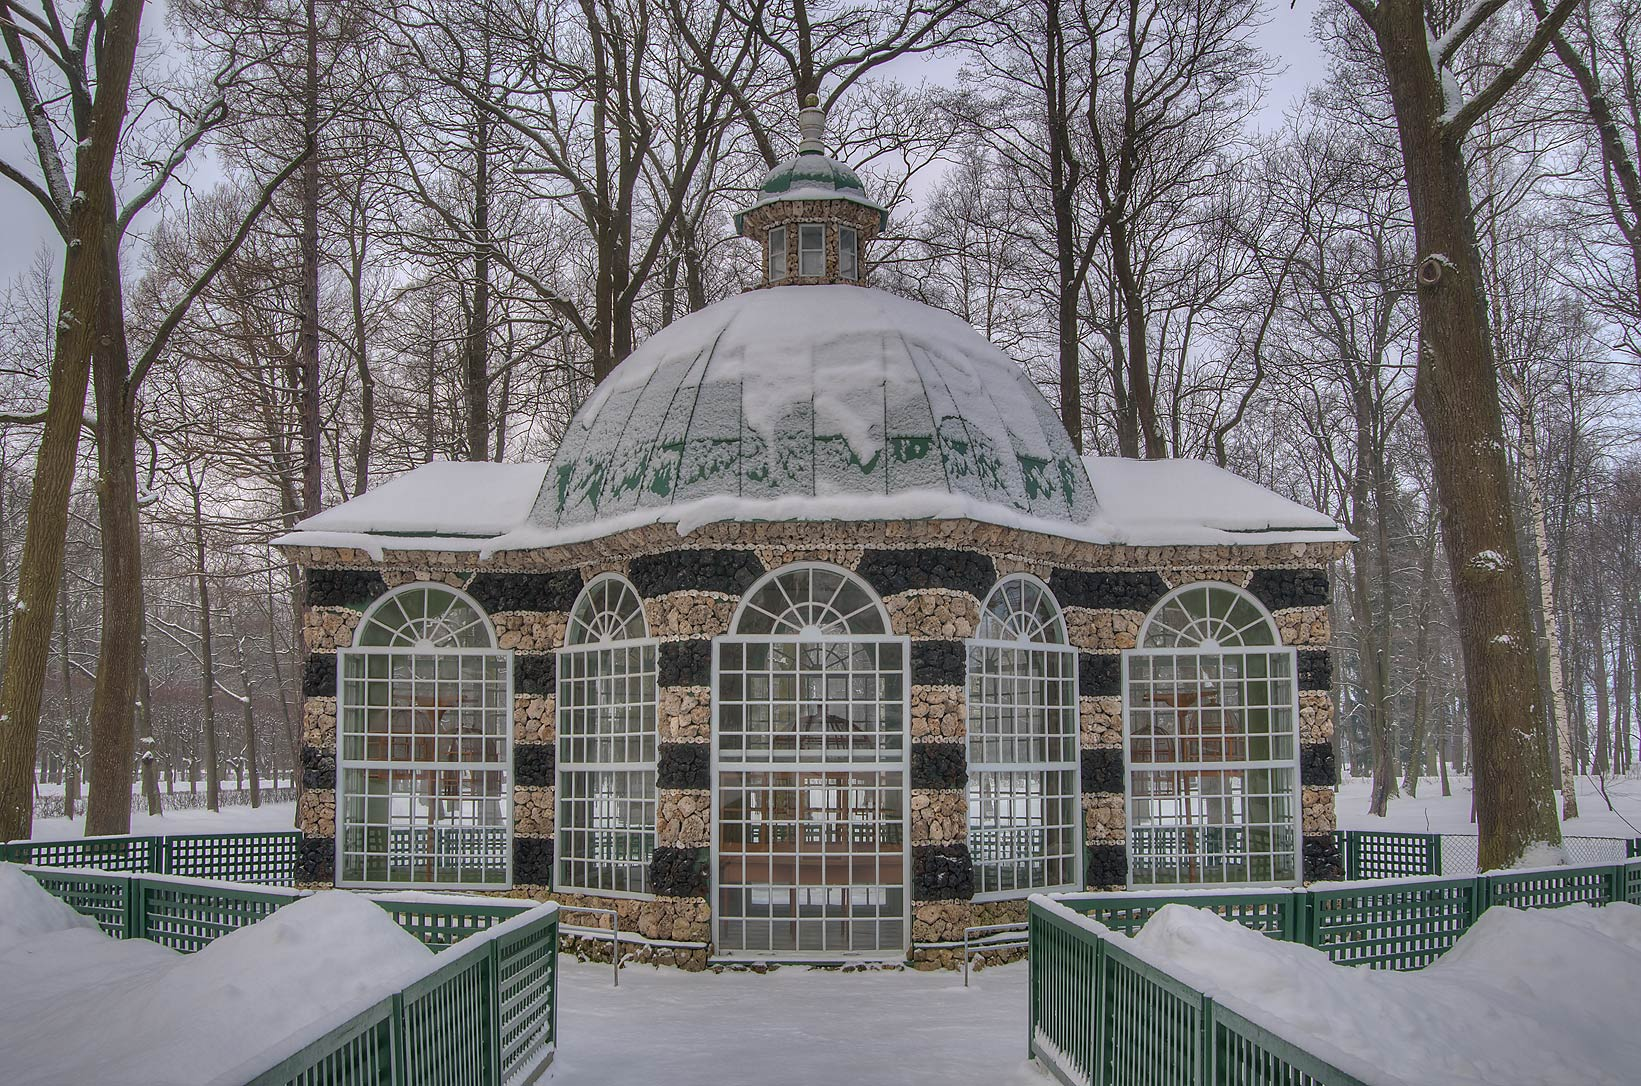 Gazebo built from sea shells in Peterhof. Near St.Petersburg, Russia